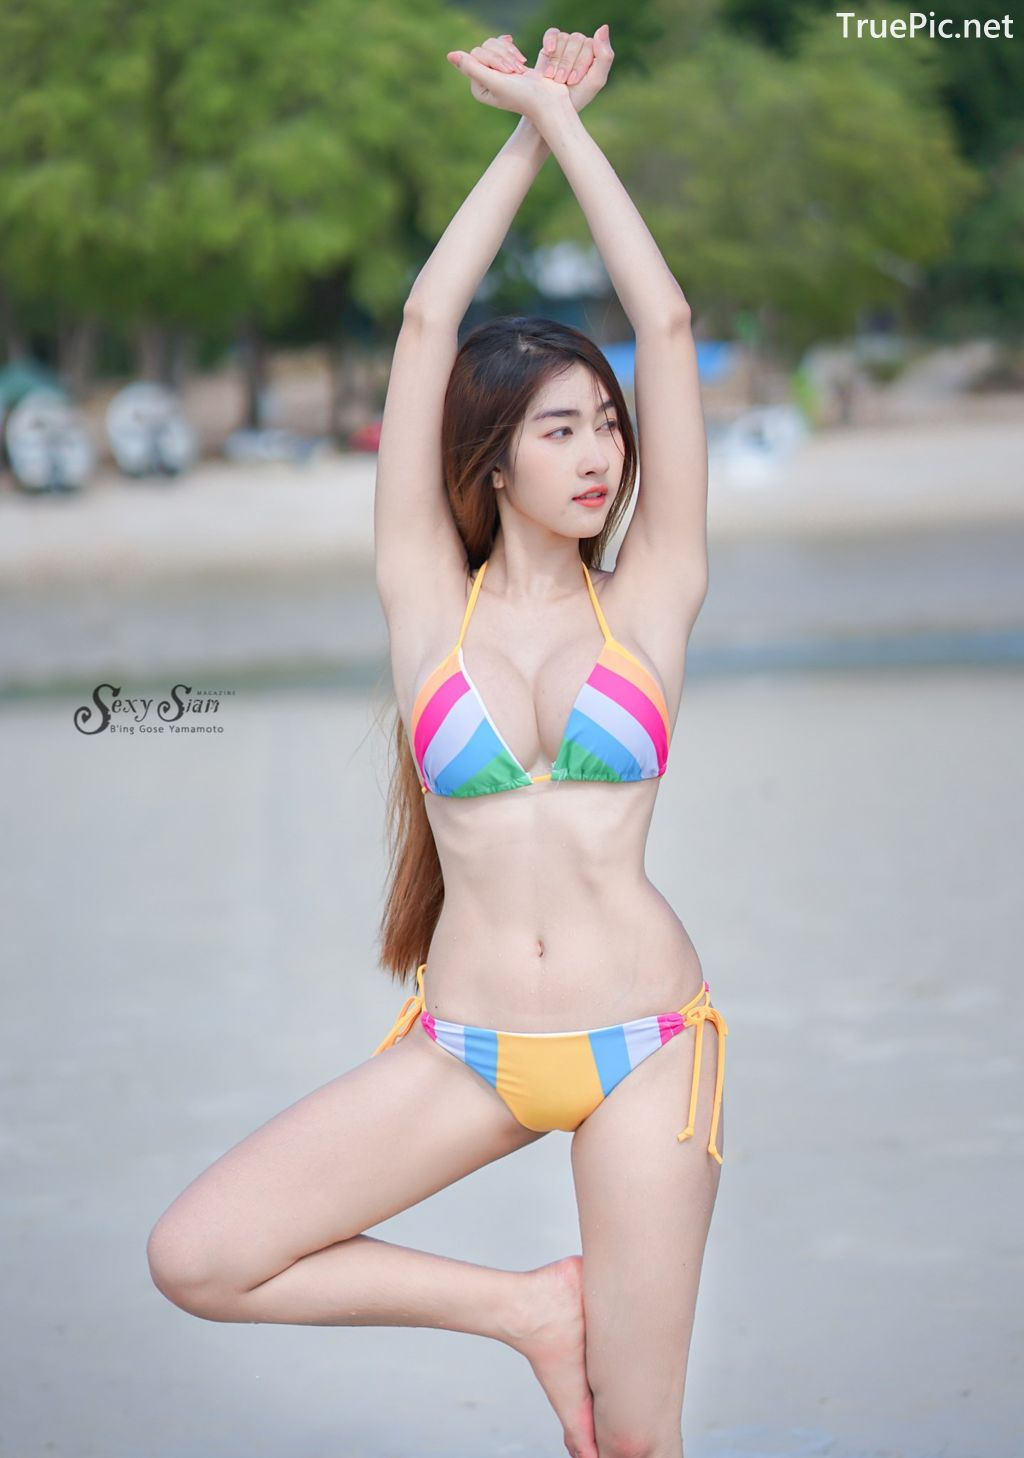 Image-Thailand-Hot-Model-Nisa-Khamarat-Bikini-For-Songkran-Festival-TruePic.net- Picture-6